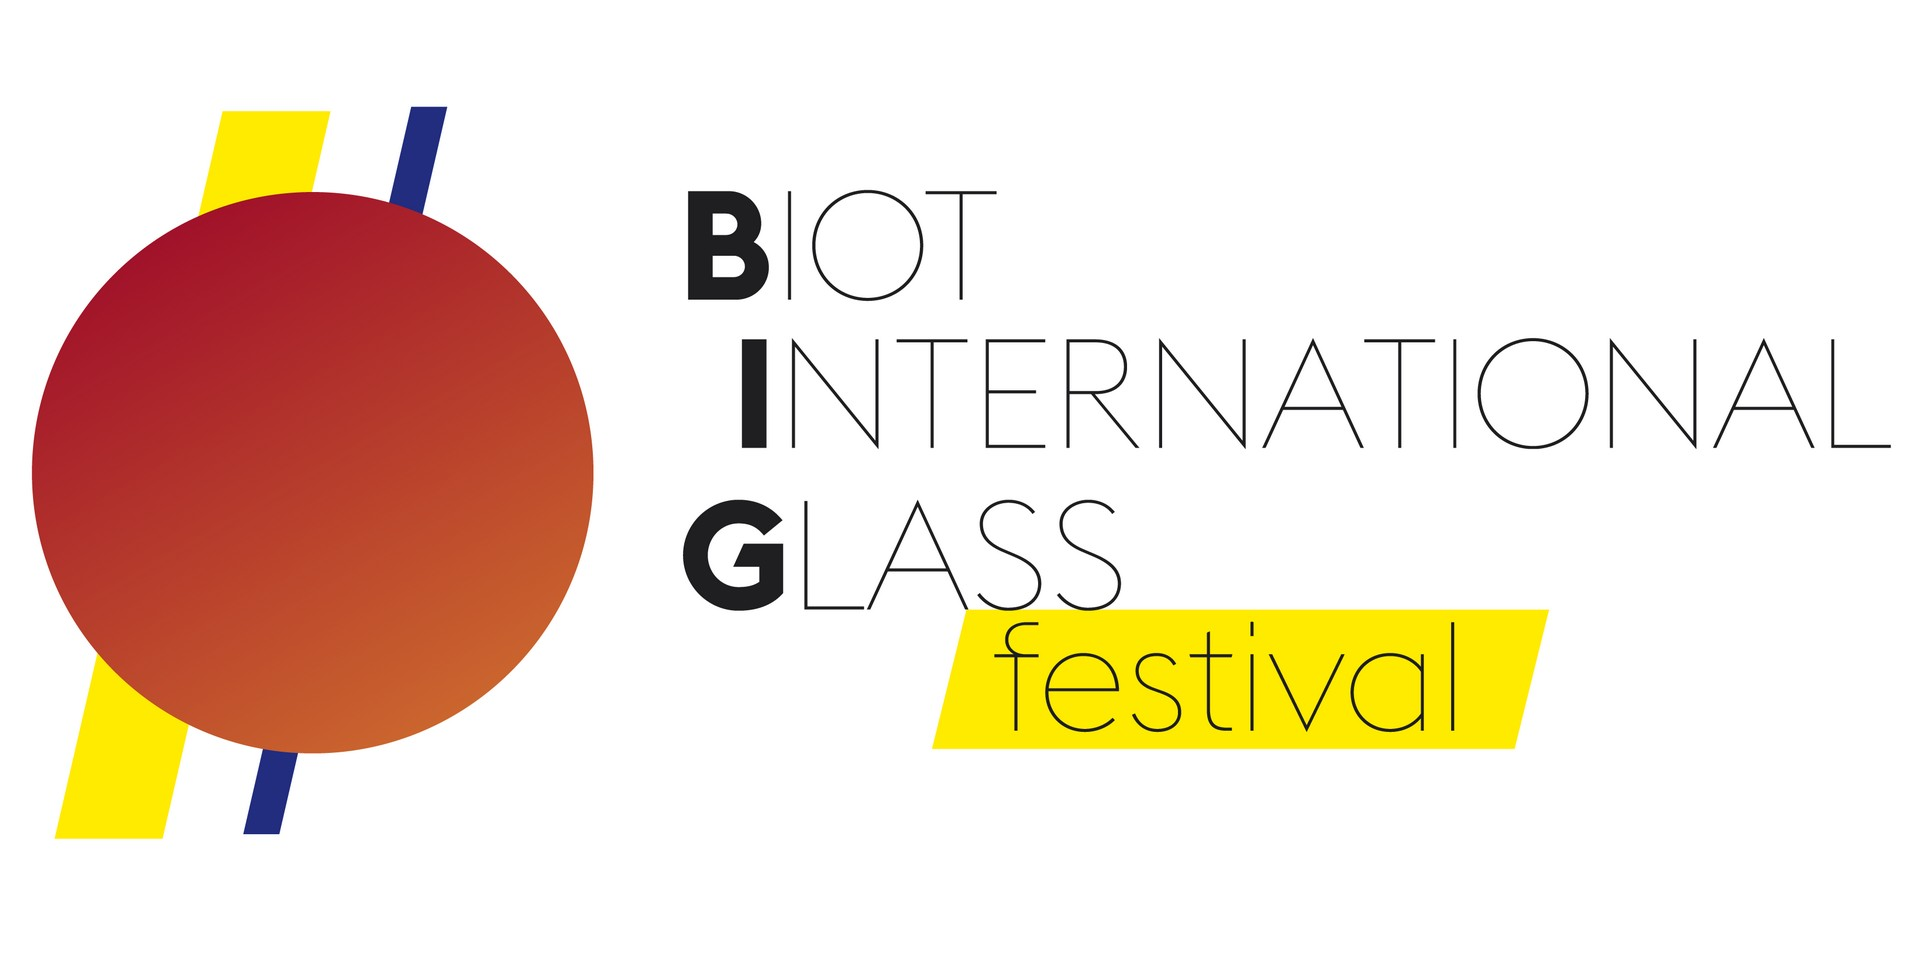 Biot International Glass Festival 2018